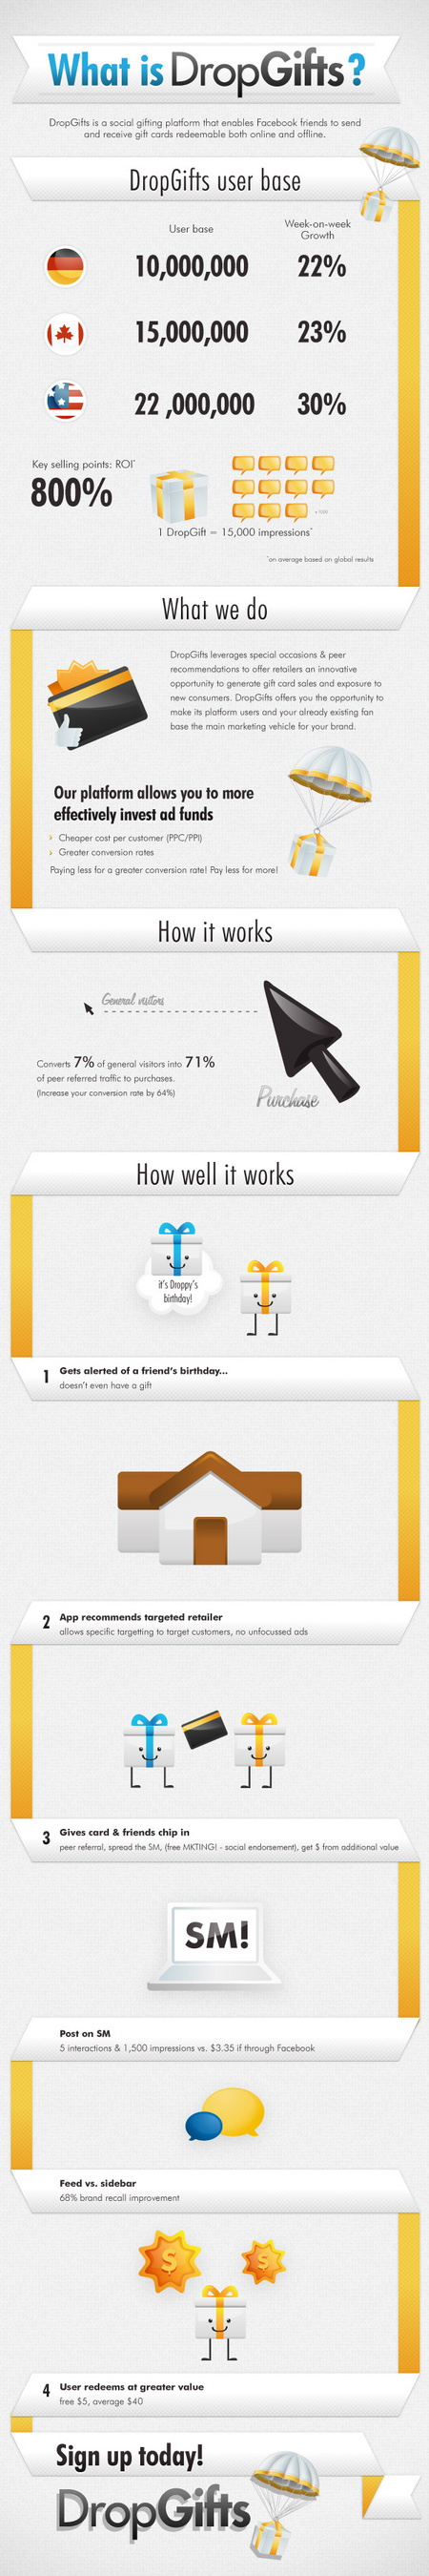 DropGifts Infographic_resize